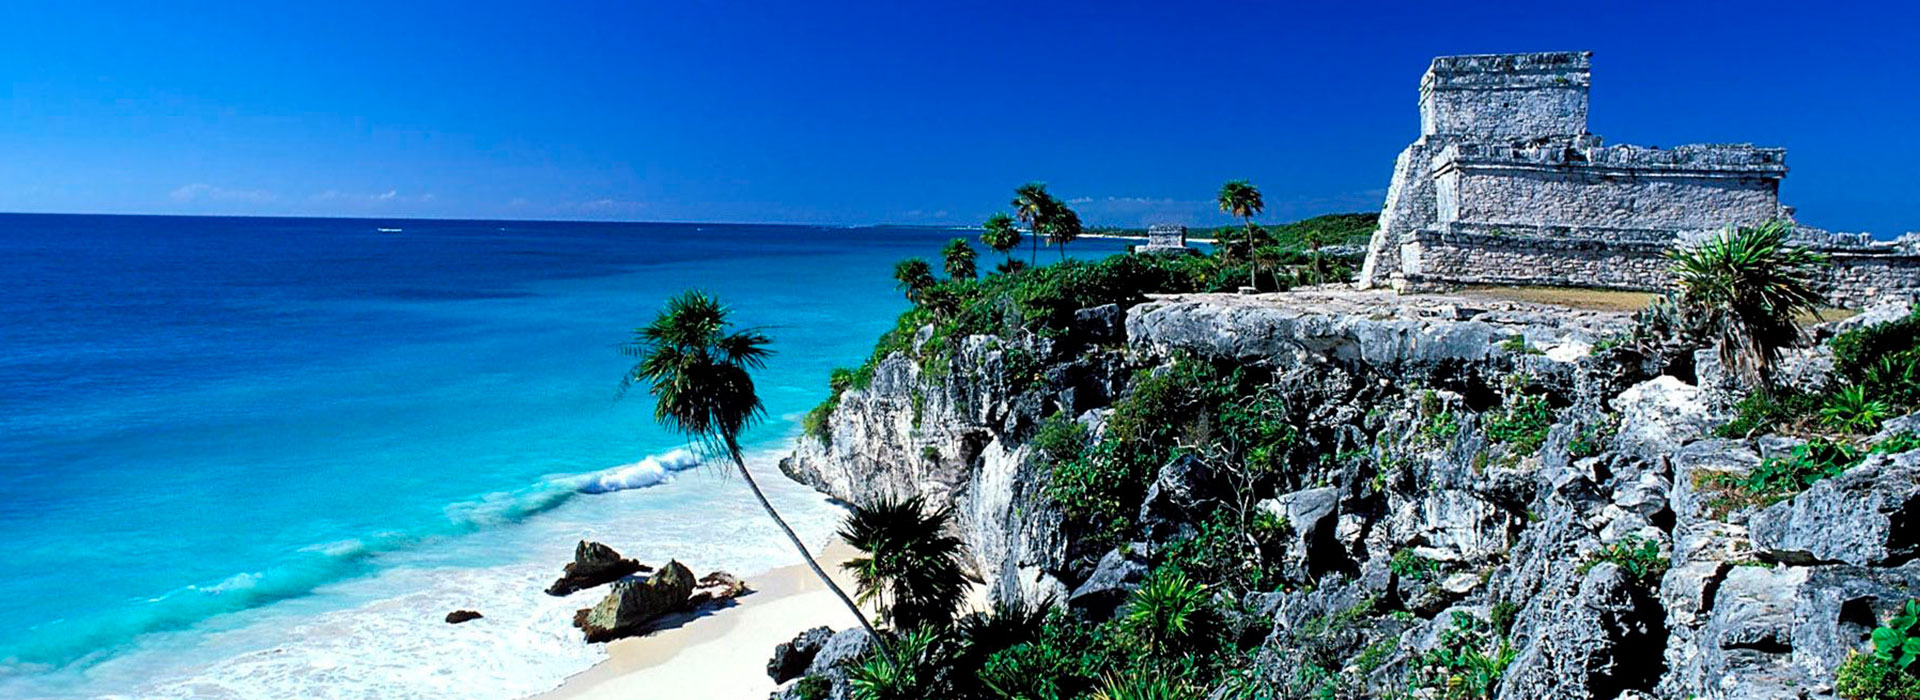 Experience BE Well Tulum, a 4-Day Women's Wellness Retreat in Tulum Mexico